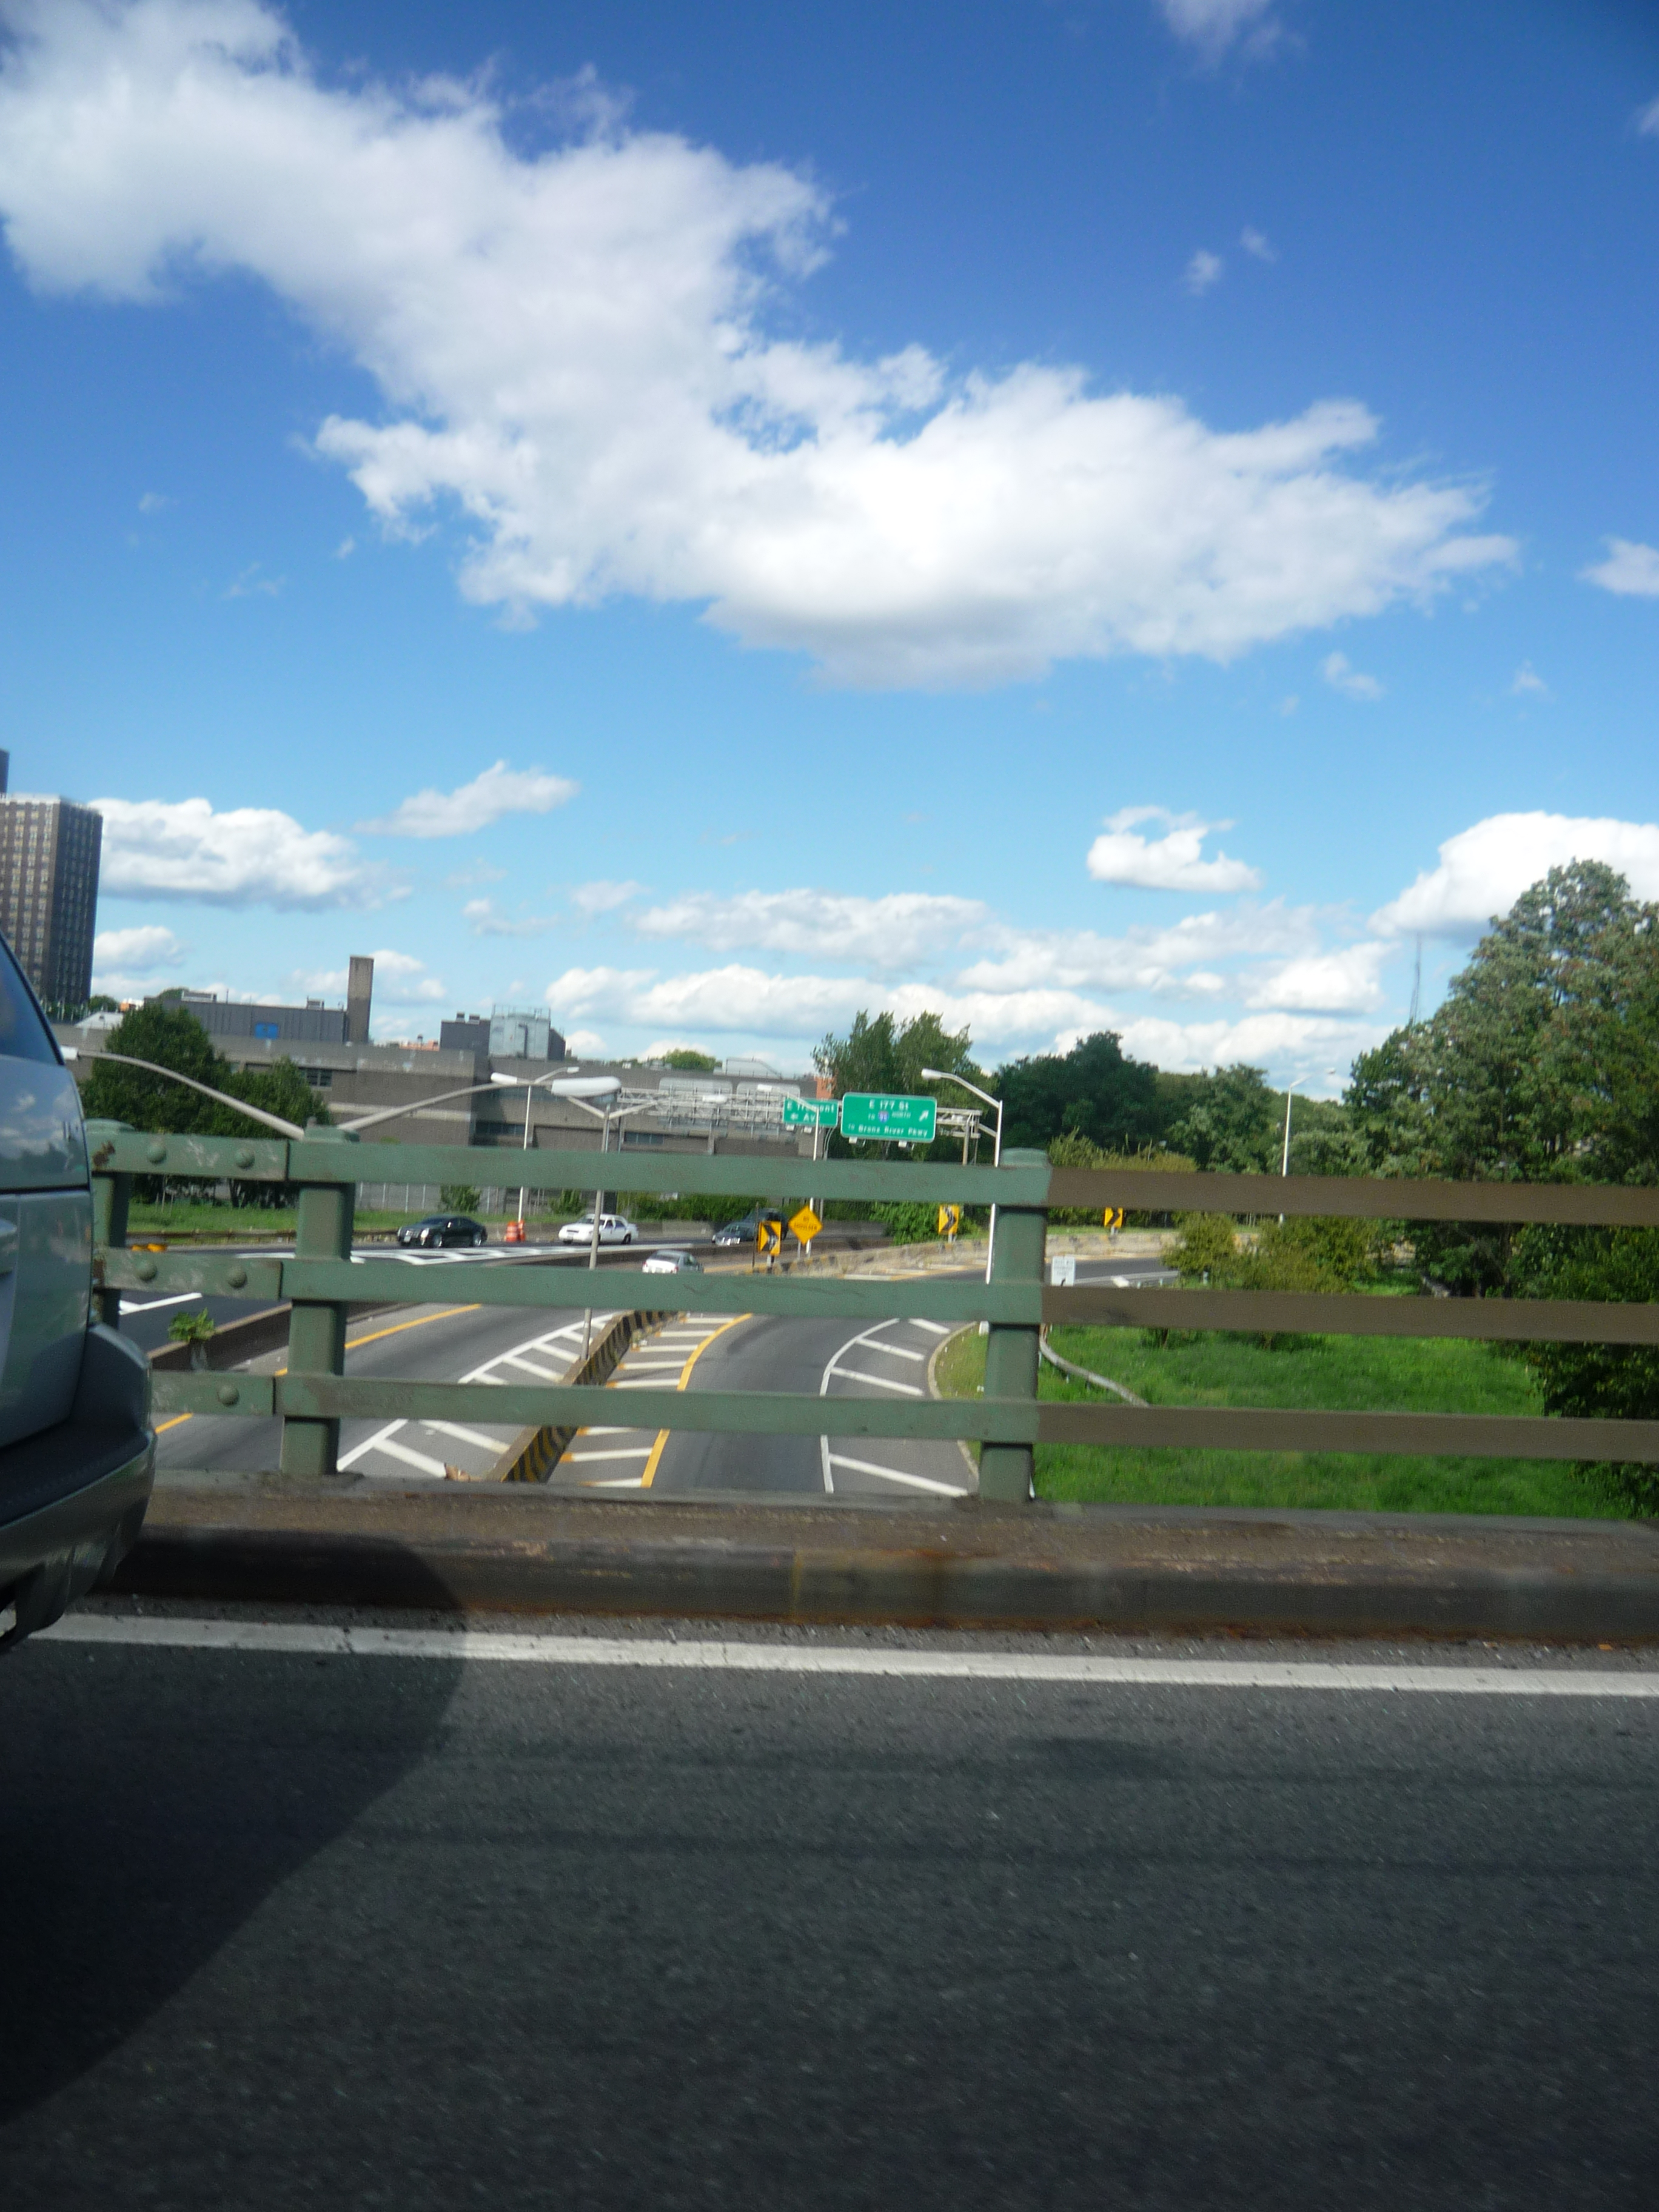 Street view, Car, Clear, Clouds, Fence, HQ Photo